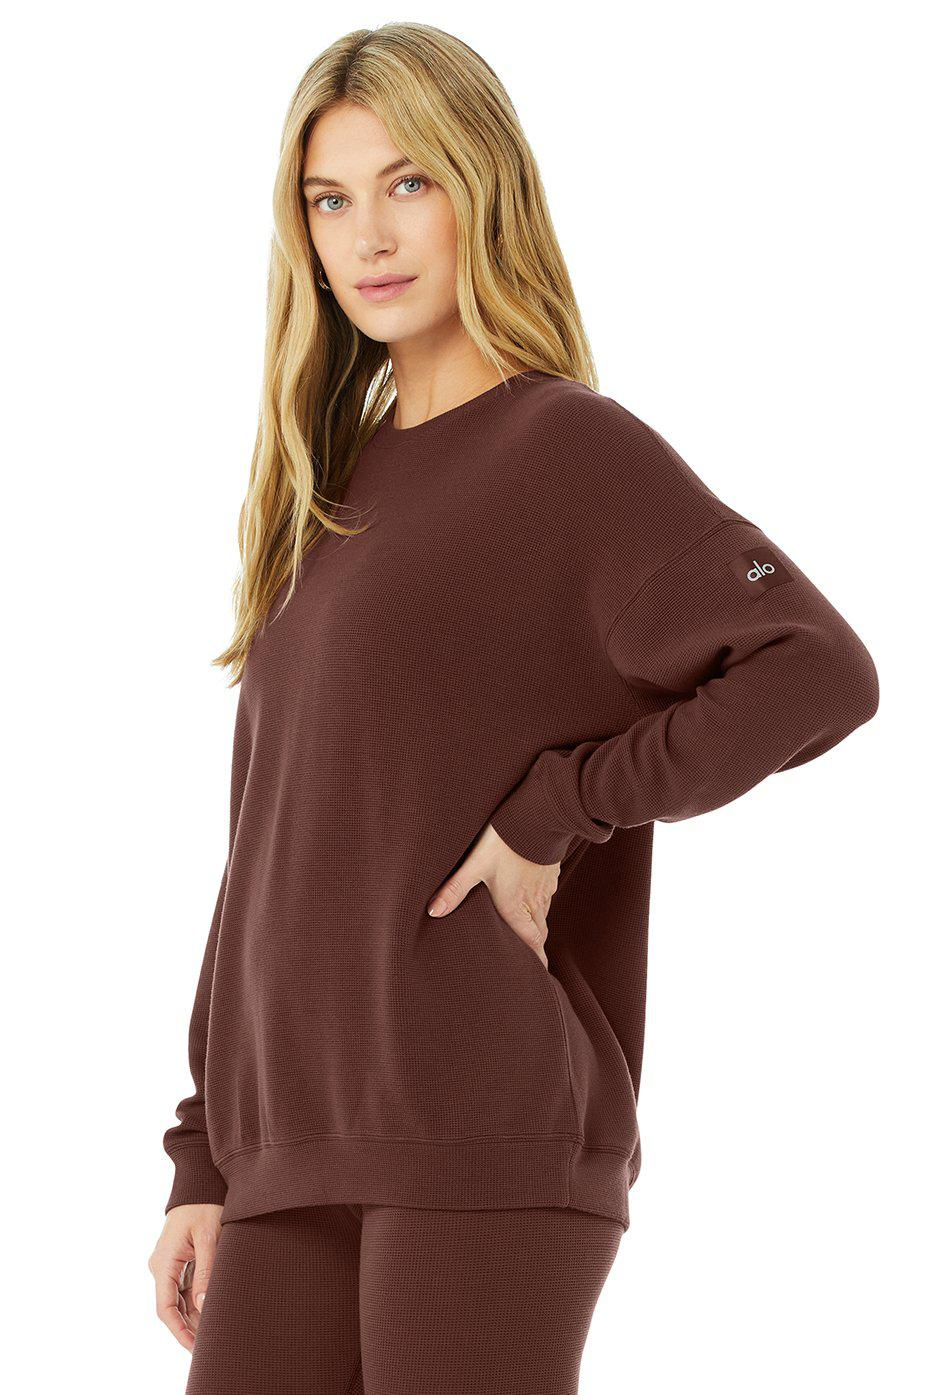 Micro Waffle Relaxation Pullover - Cherry Cola 1